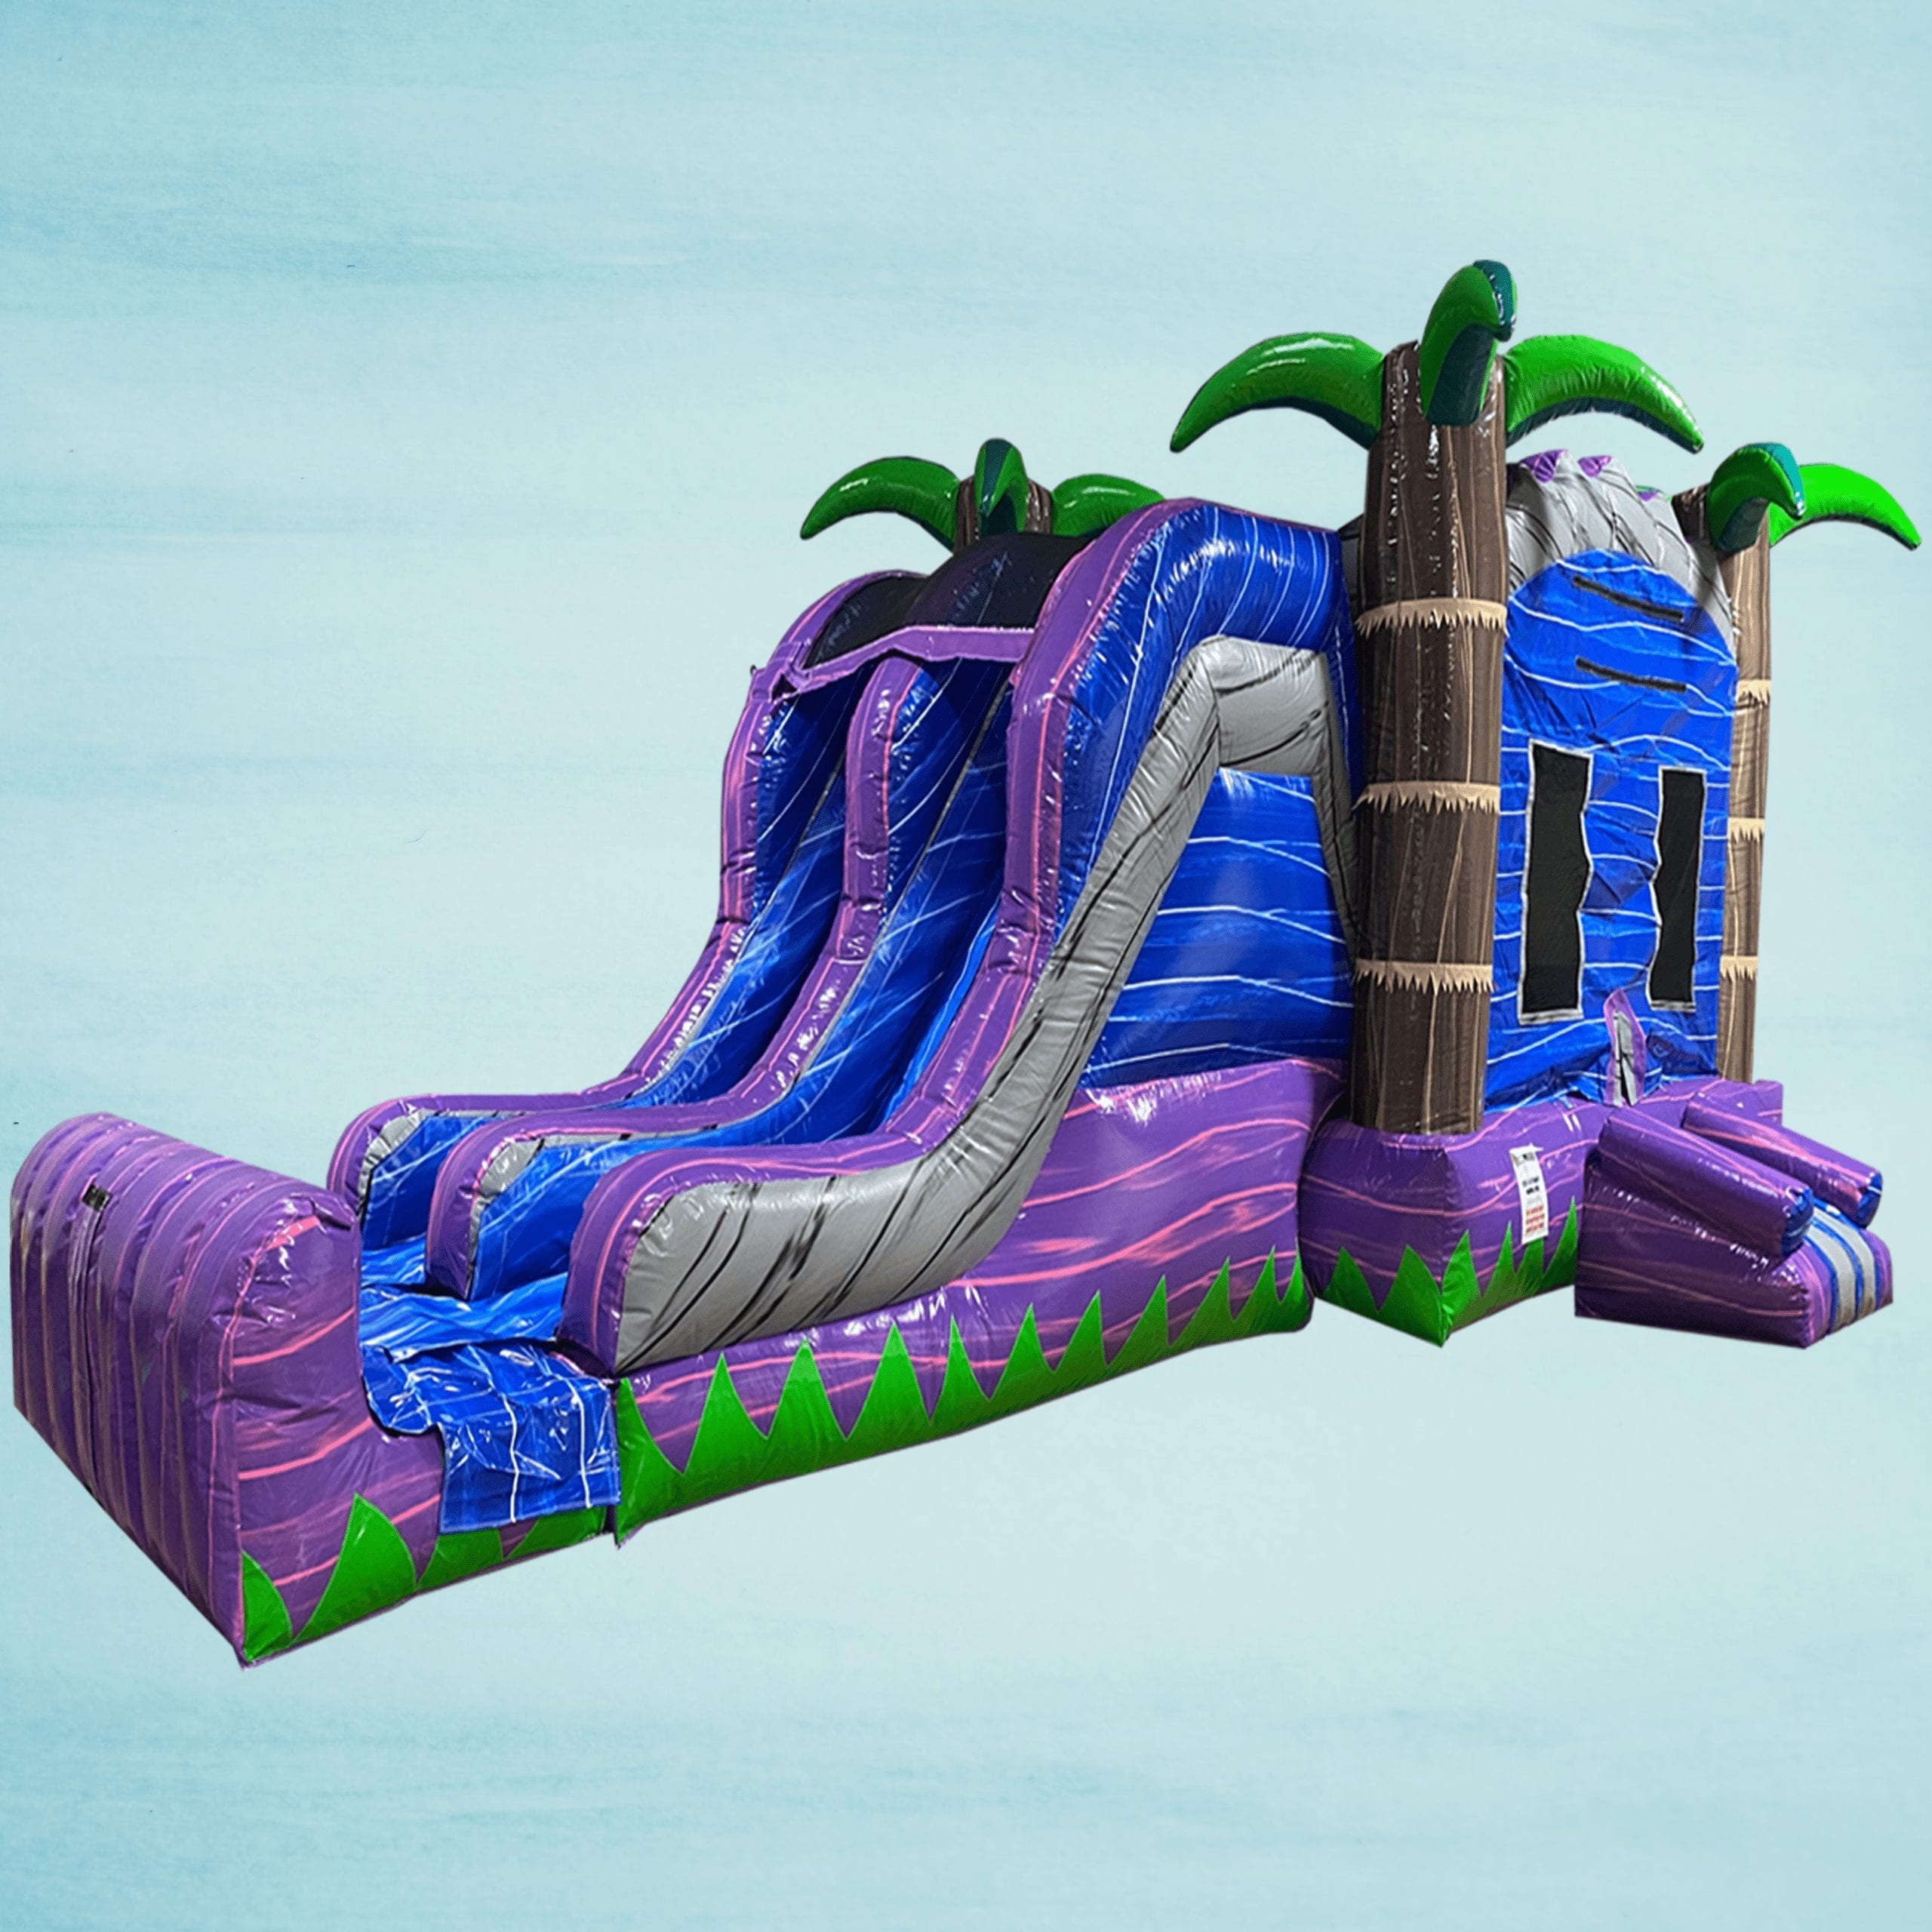 Purple Crush Bounce House